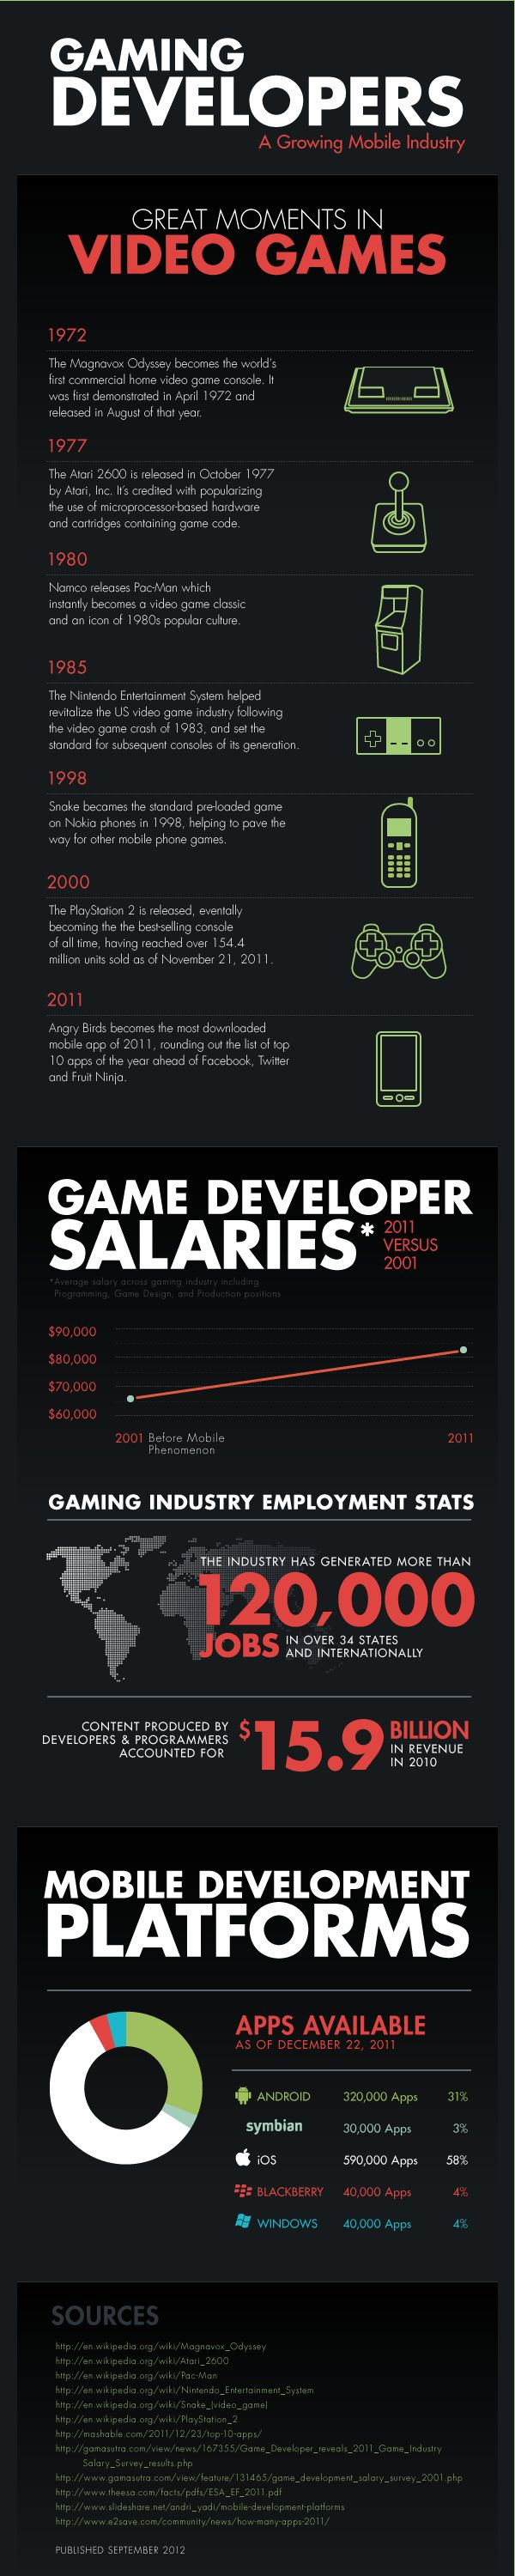 Gaming Developers: A Growing Mobile Industry [INFOGRAPHIC]